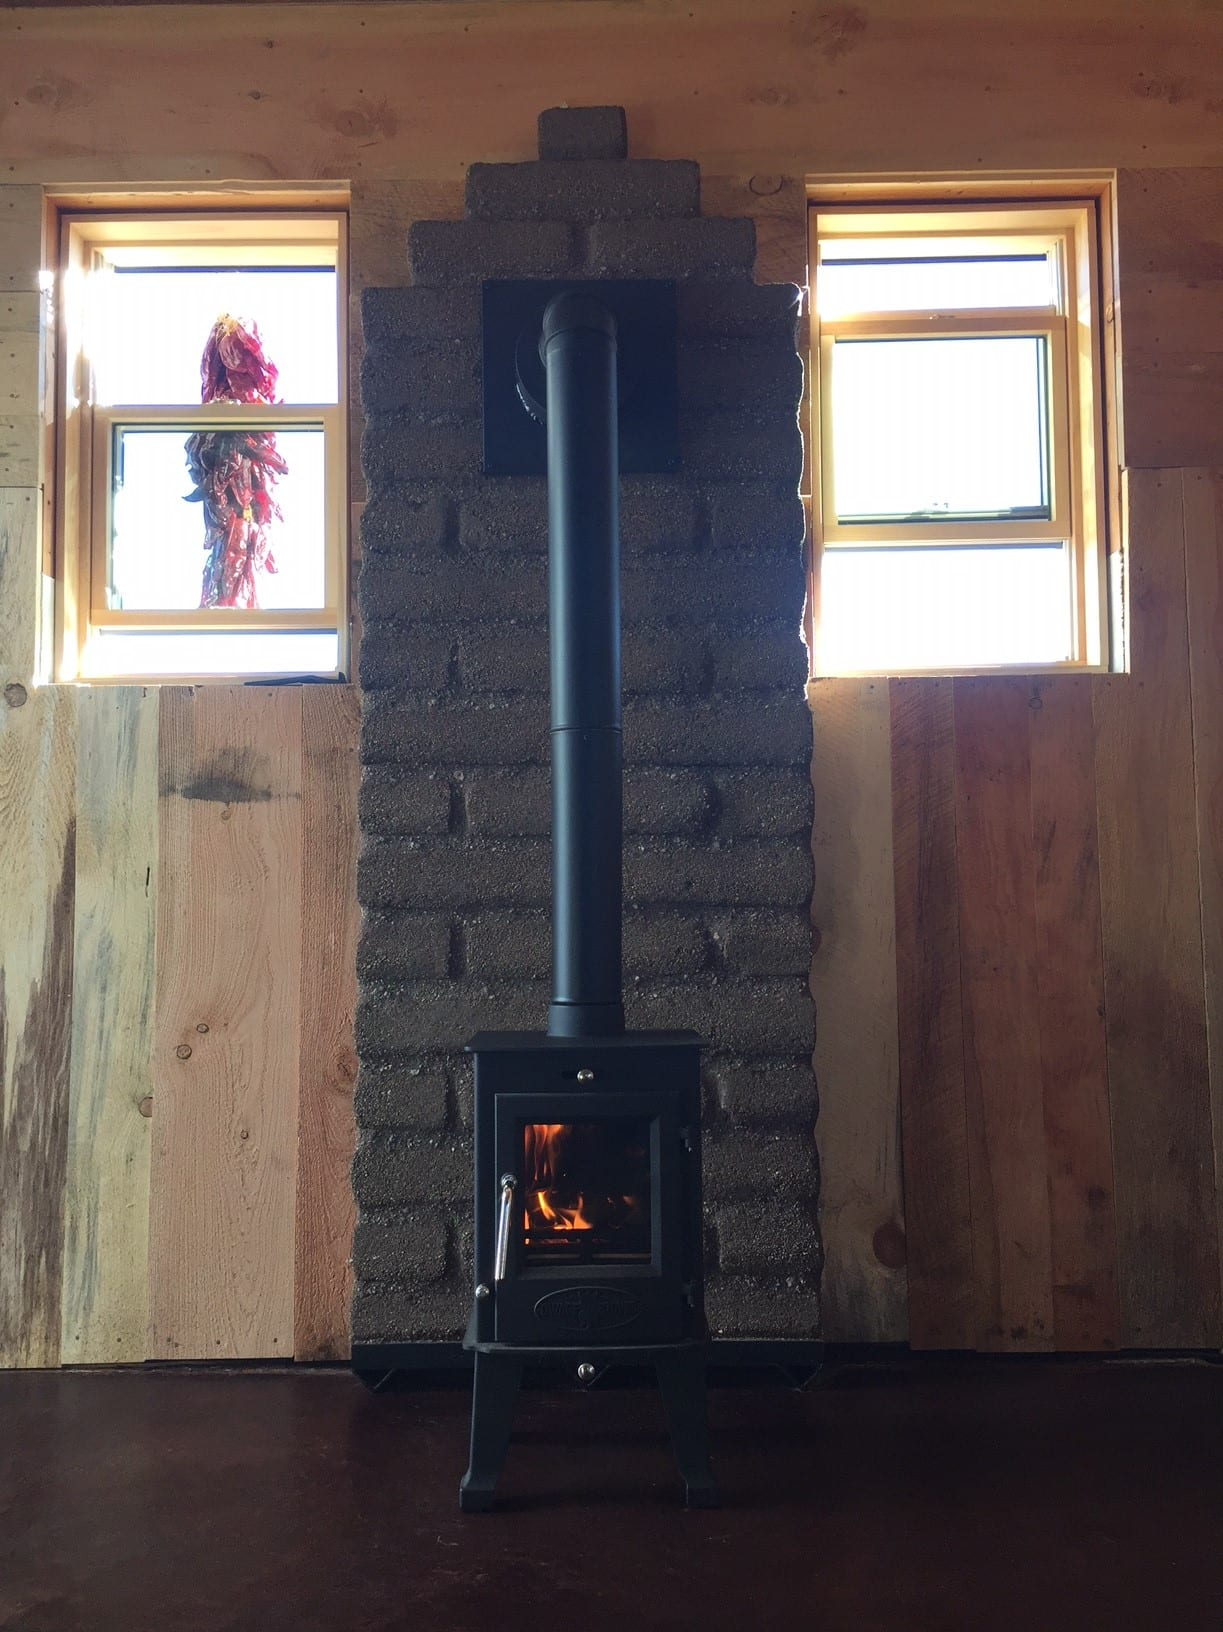 How To Build Heat Shields For Wood Stoves Tiny Wood Stove